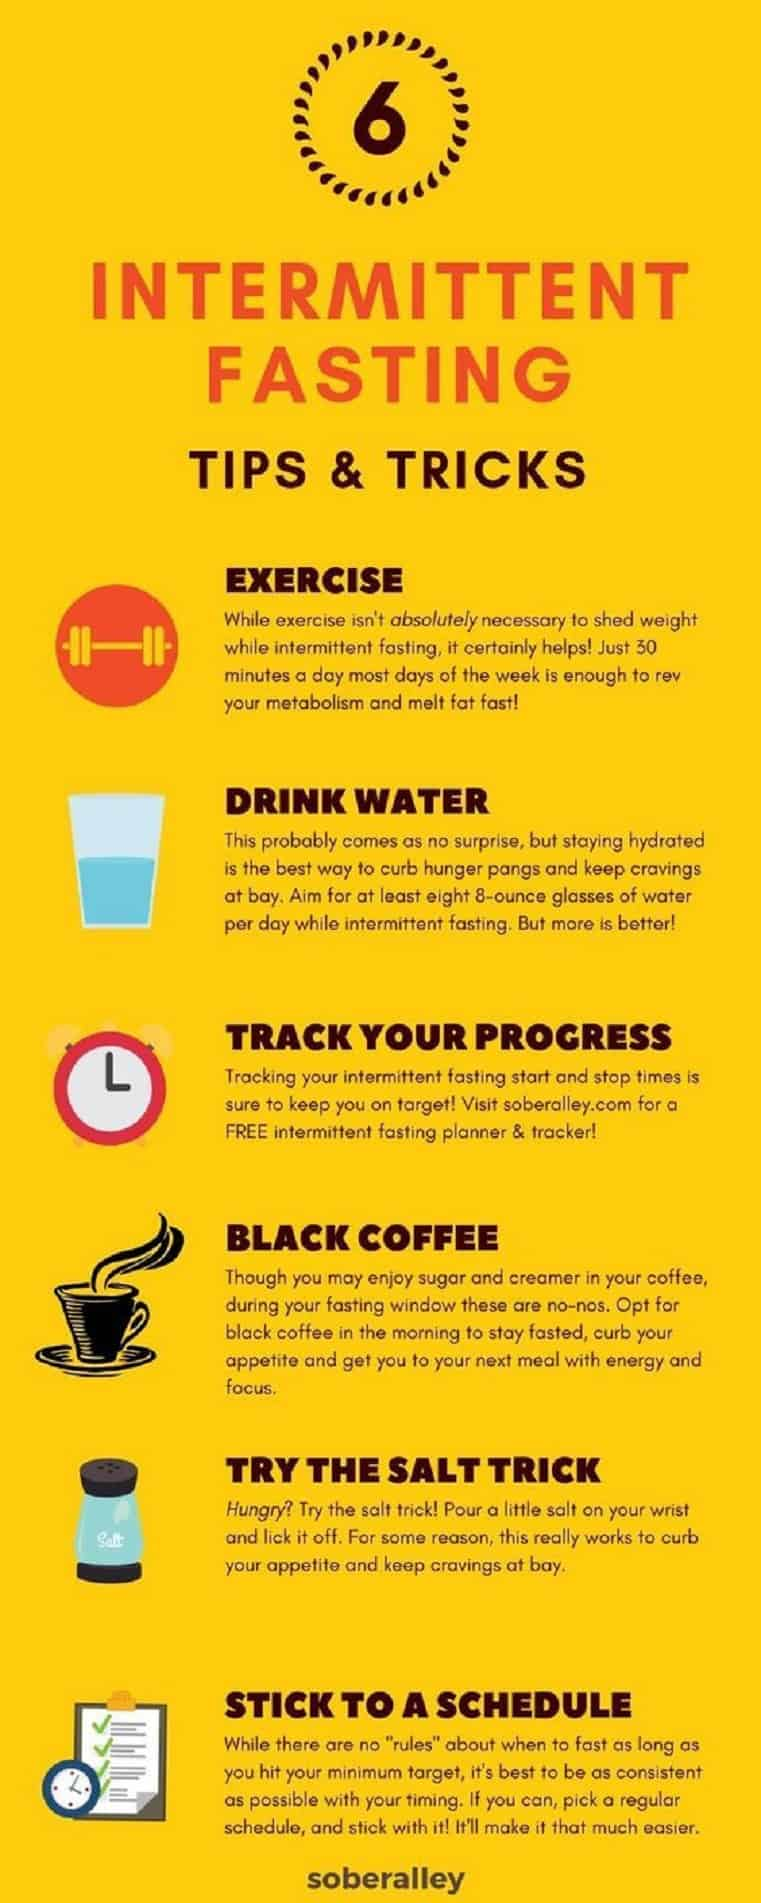 8 Intermittent Fasting Tips & Tricks For Beginners